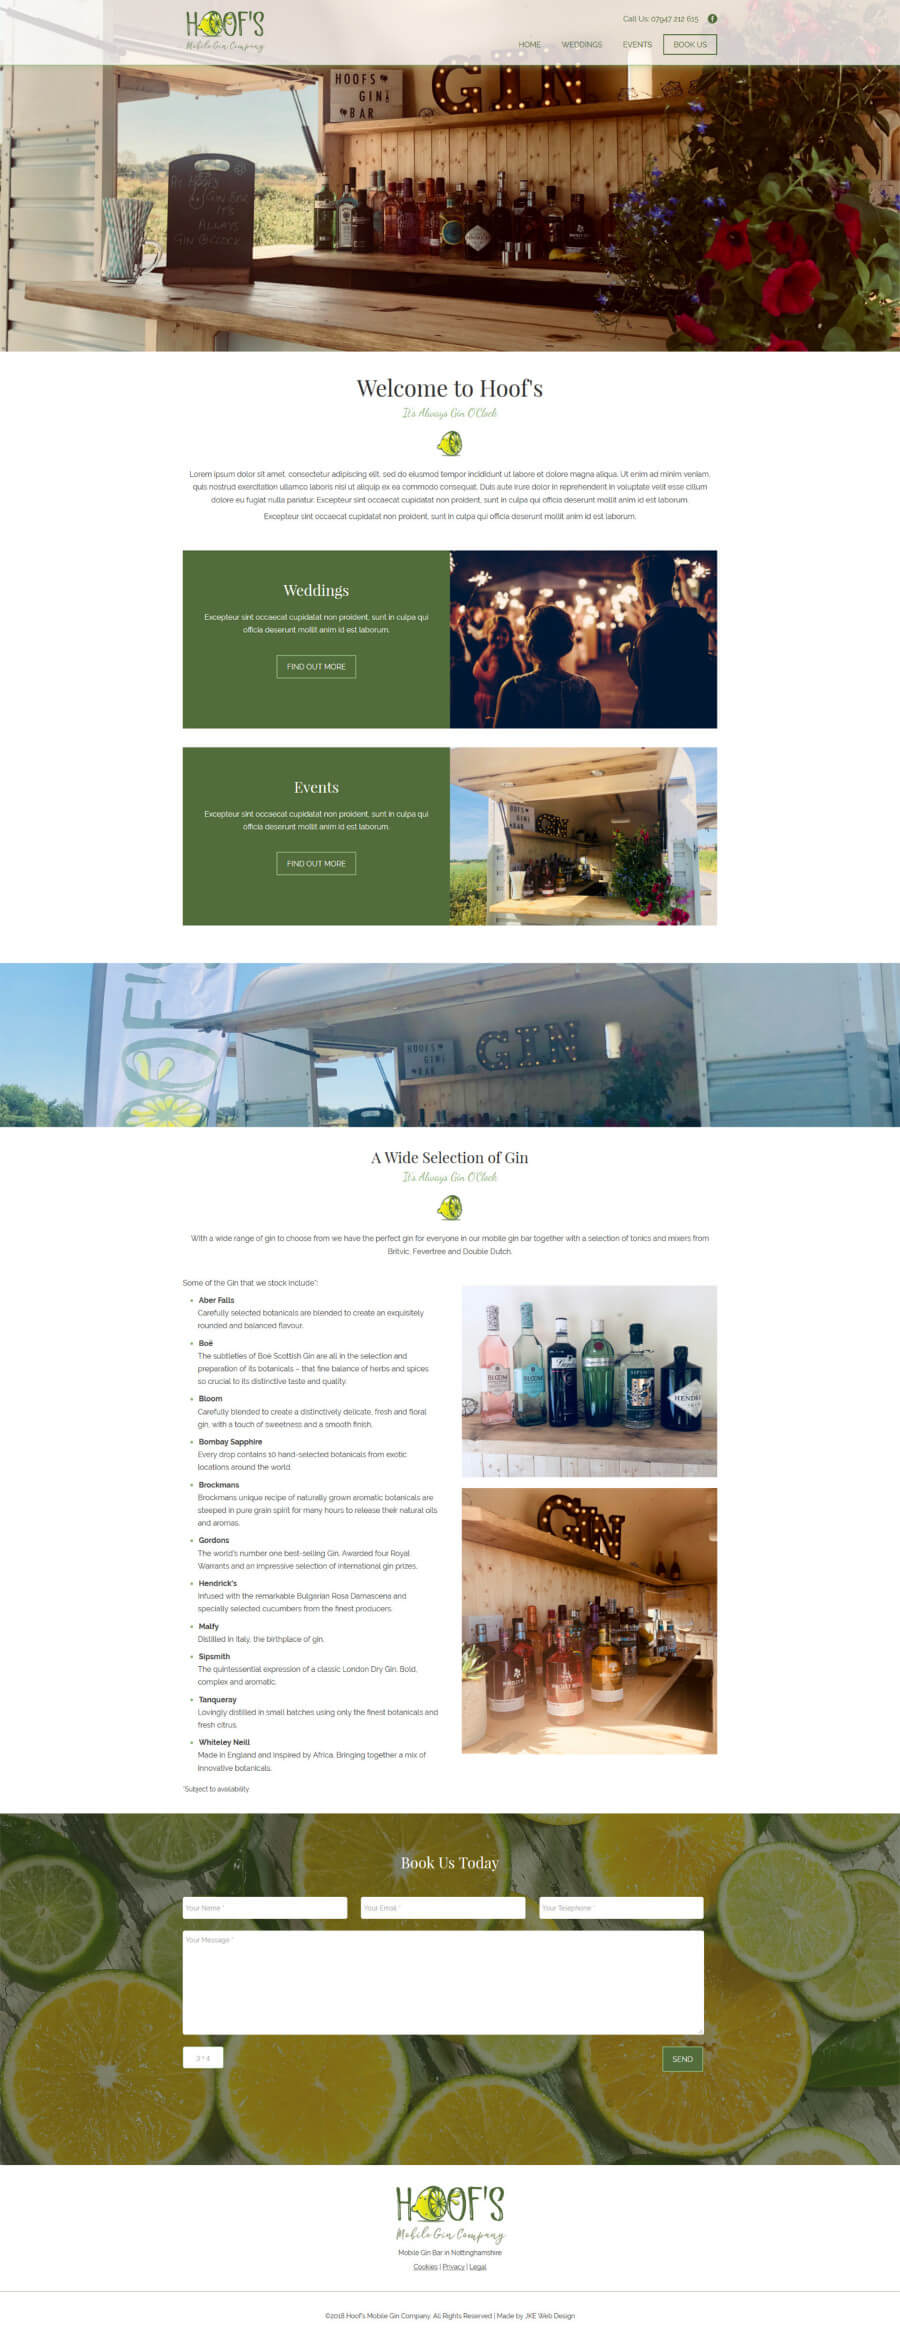 Hoof's Mobile Gin Company website